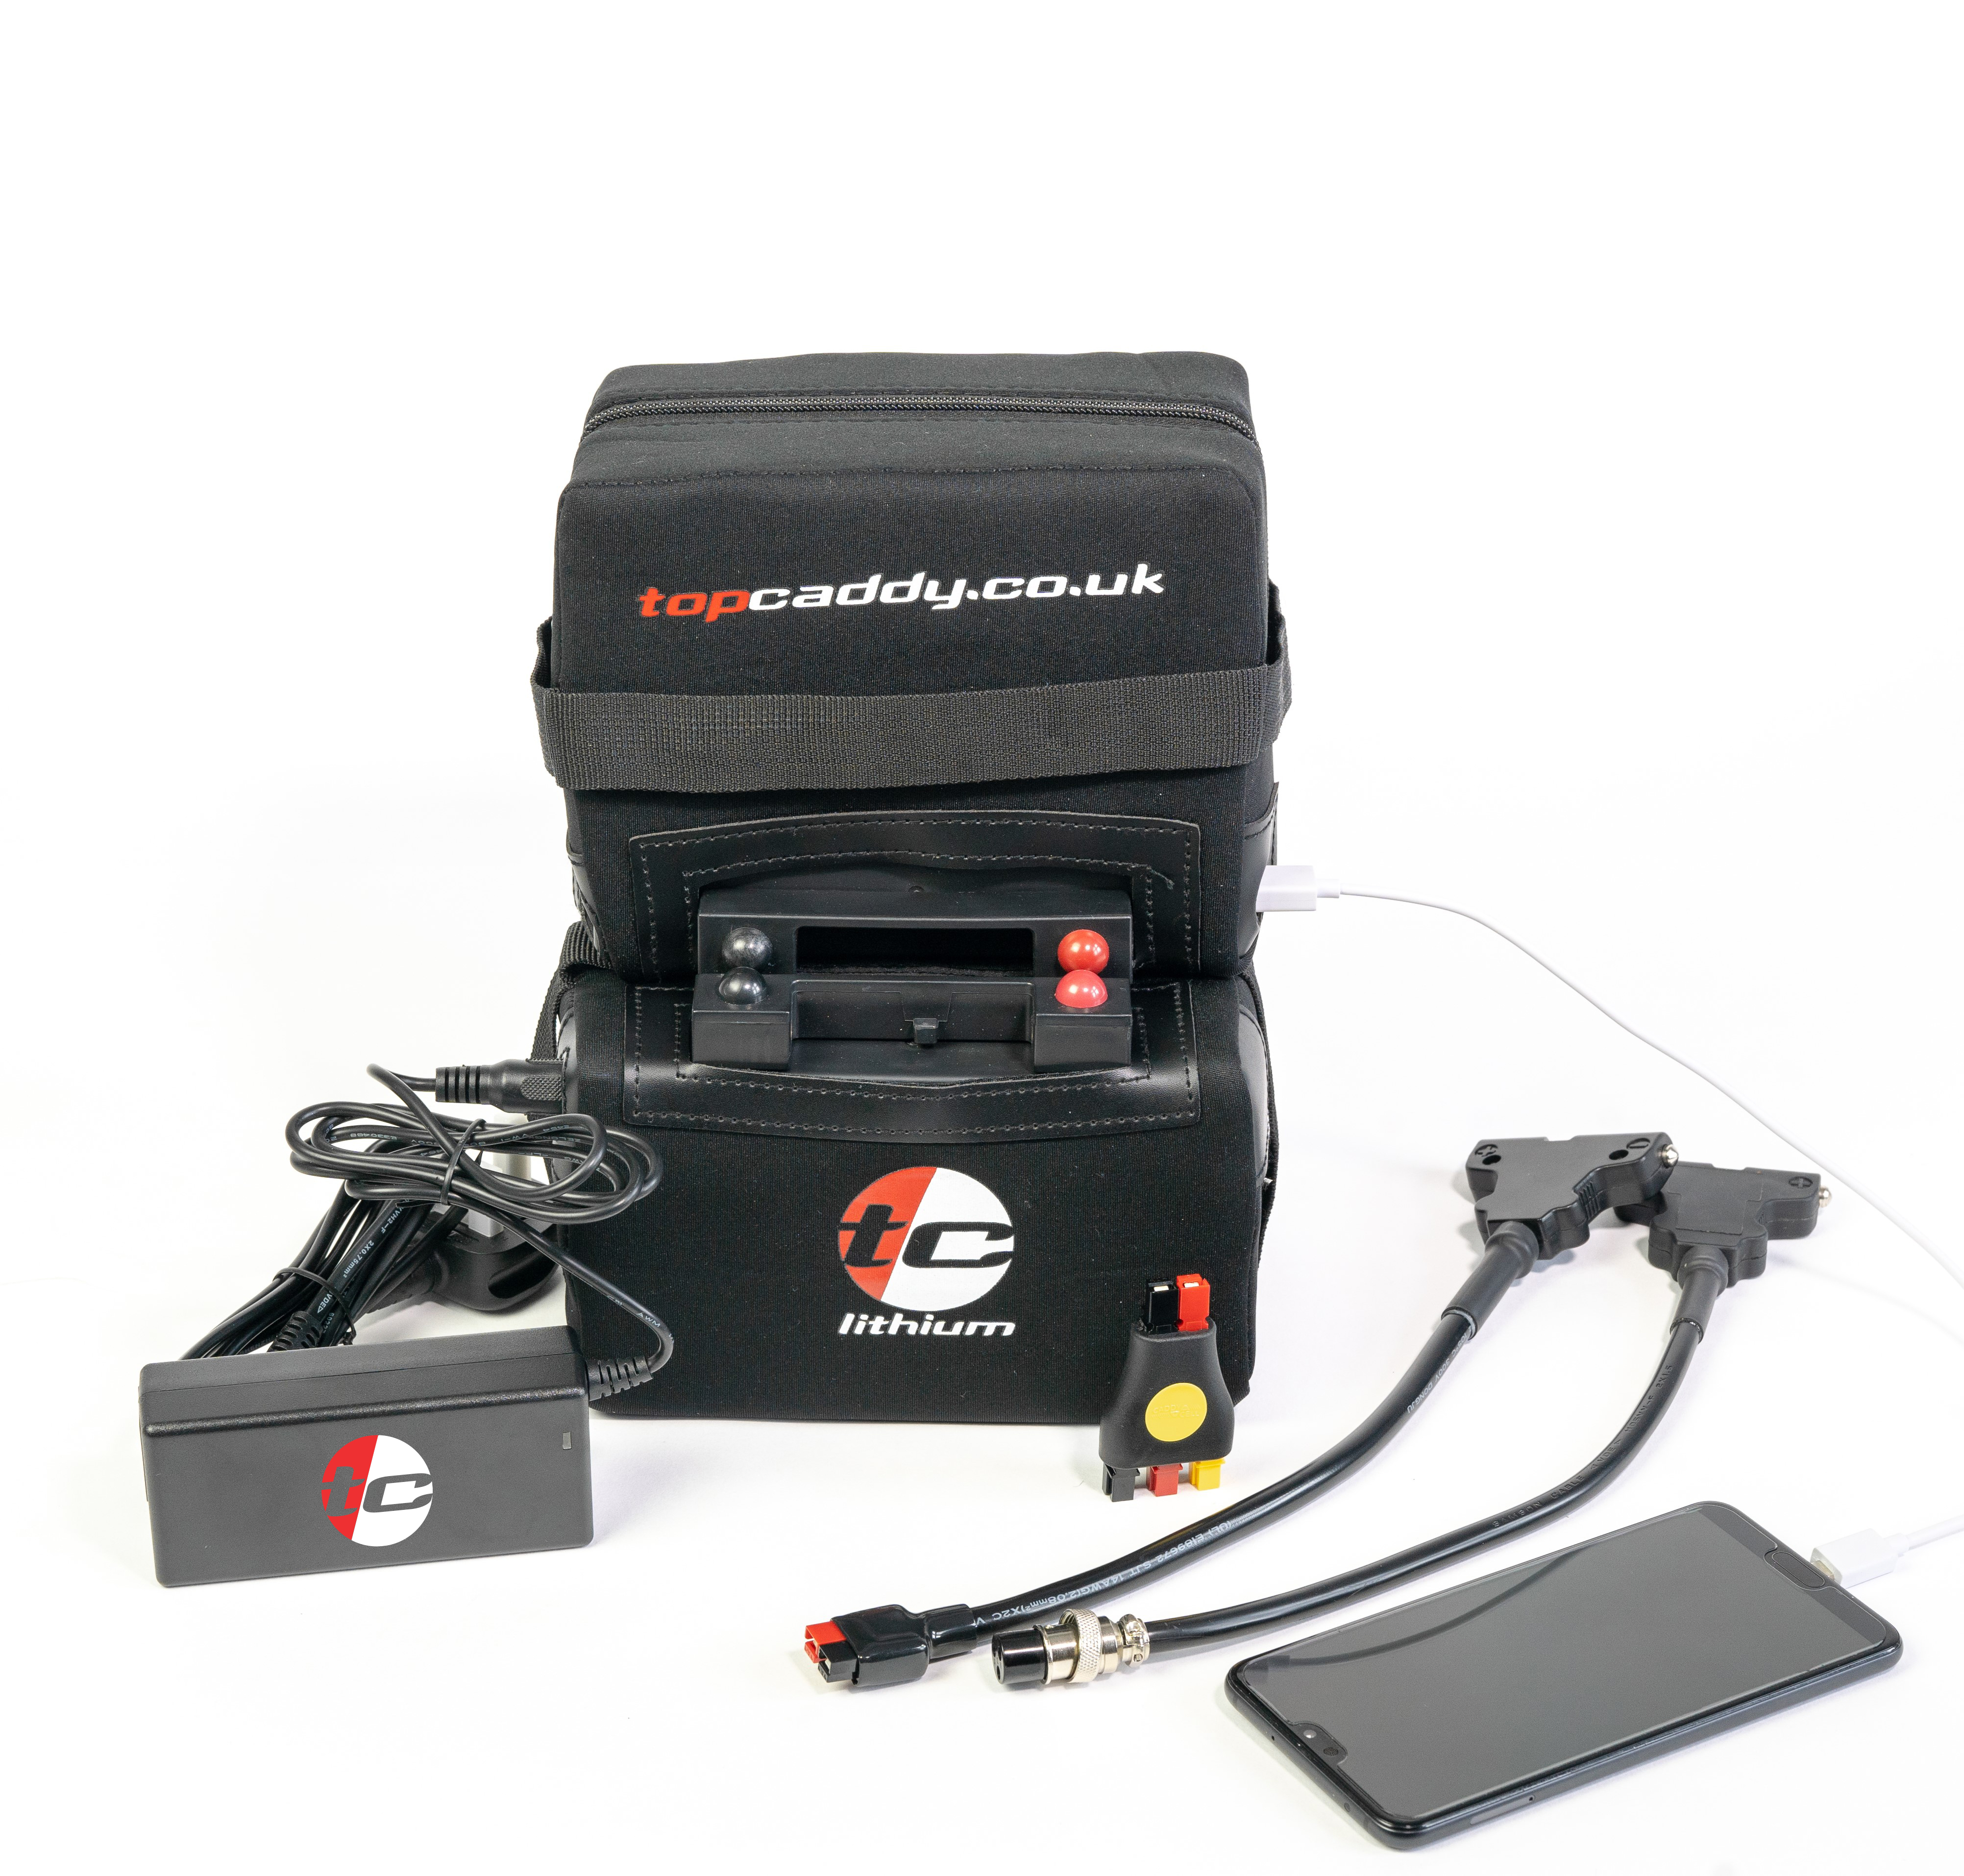 Topcaddy 36 Hole (22ah) 'USB' Lithium Battery Package - Top Caddy